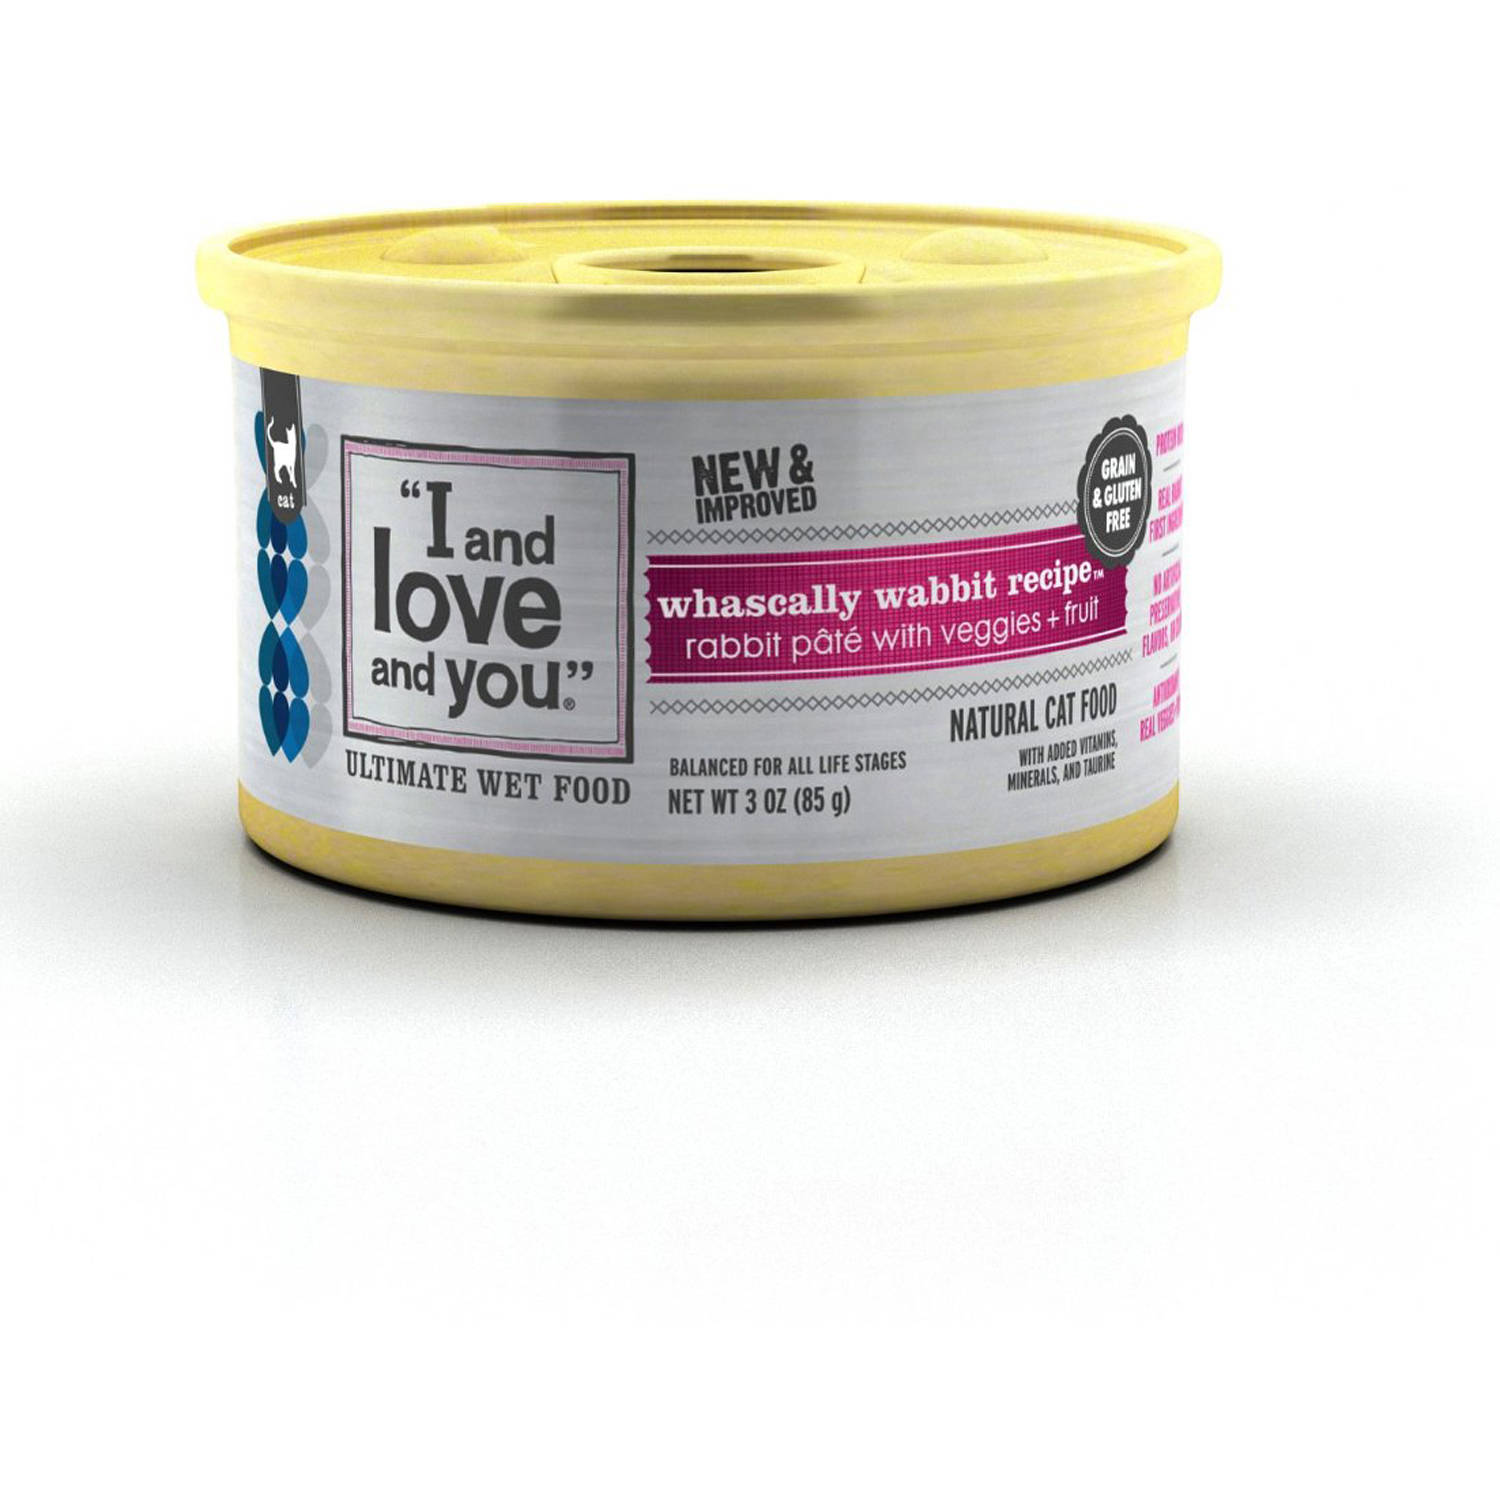 I And Love And You Whascally Wabbit Recipe, Rabbit Pate with Veggies and Fruit, Cat Food, 3 oz, 24-Pack